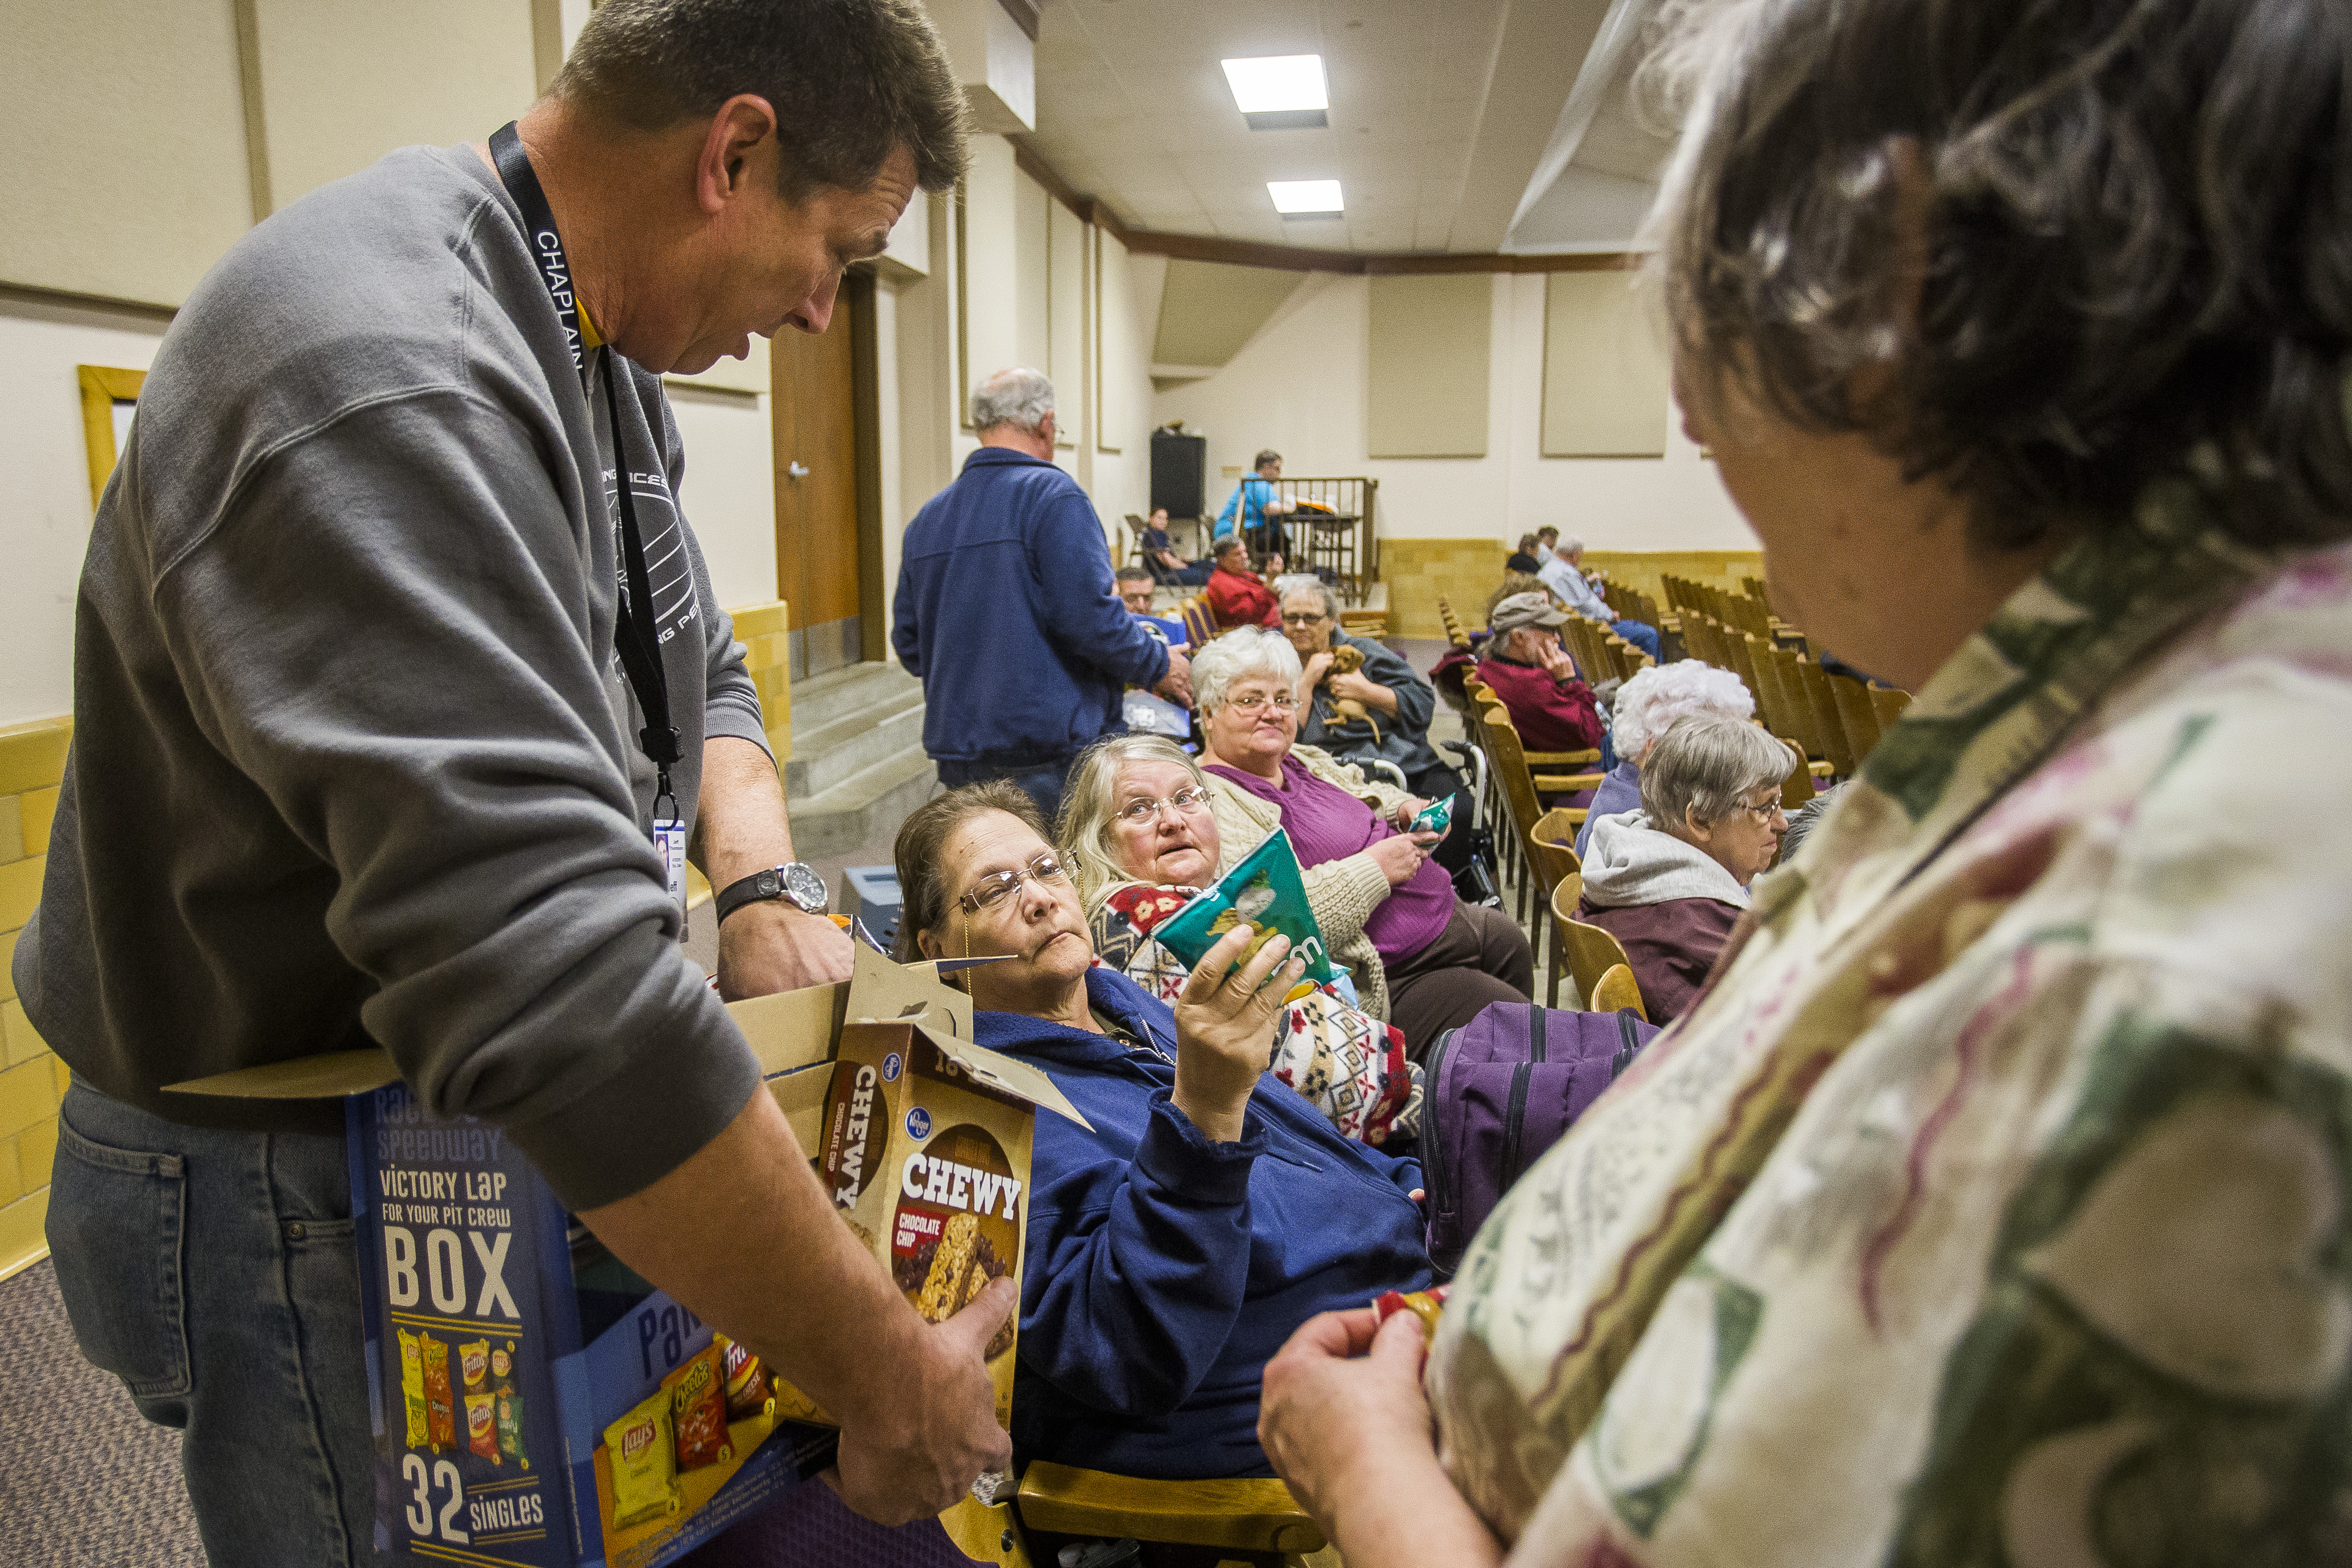 Southern Baptist Disaster Relief Chaplain Jeff Thompson passes bags of chips to (L-R) Suzanne Morgan, Carol Shaylor and Linda Nimmo inside an evacuation center at the Kansas State Fairgounds as a grassfire continues to rage north of Hutchinson, Kan., on March 6, 2017. (Katy Kildee/The Hutchinson News via AP)